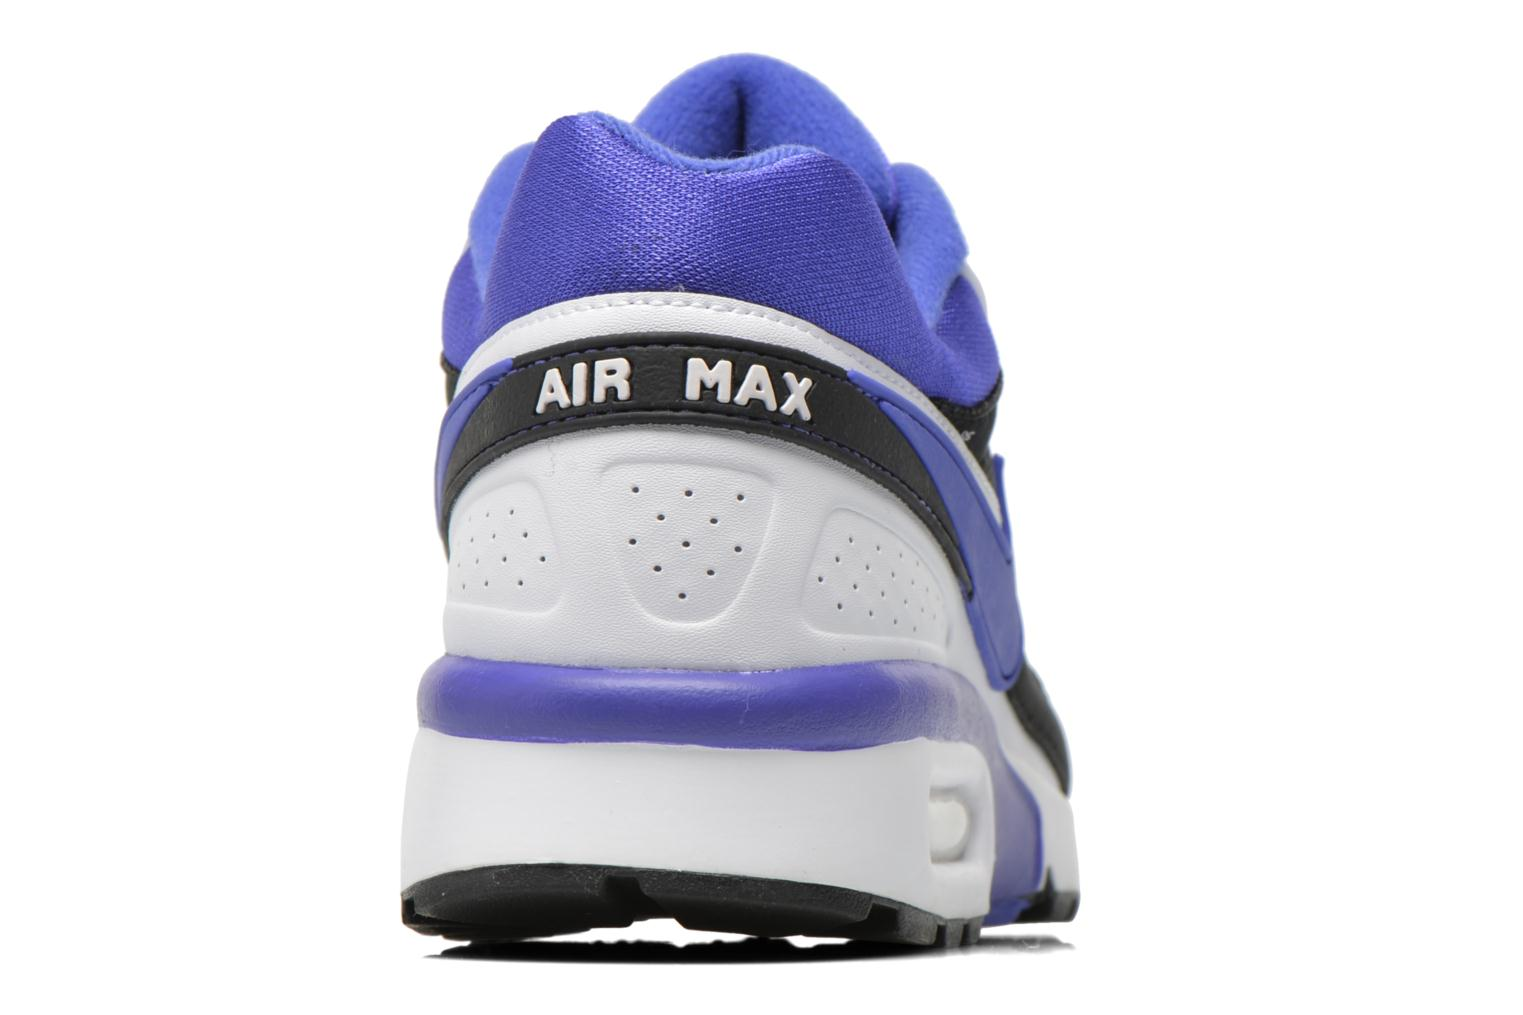 Nike Air Max Bw Og Black/Persian Violet-White